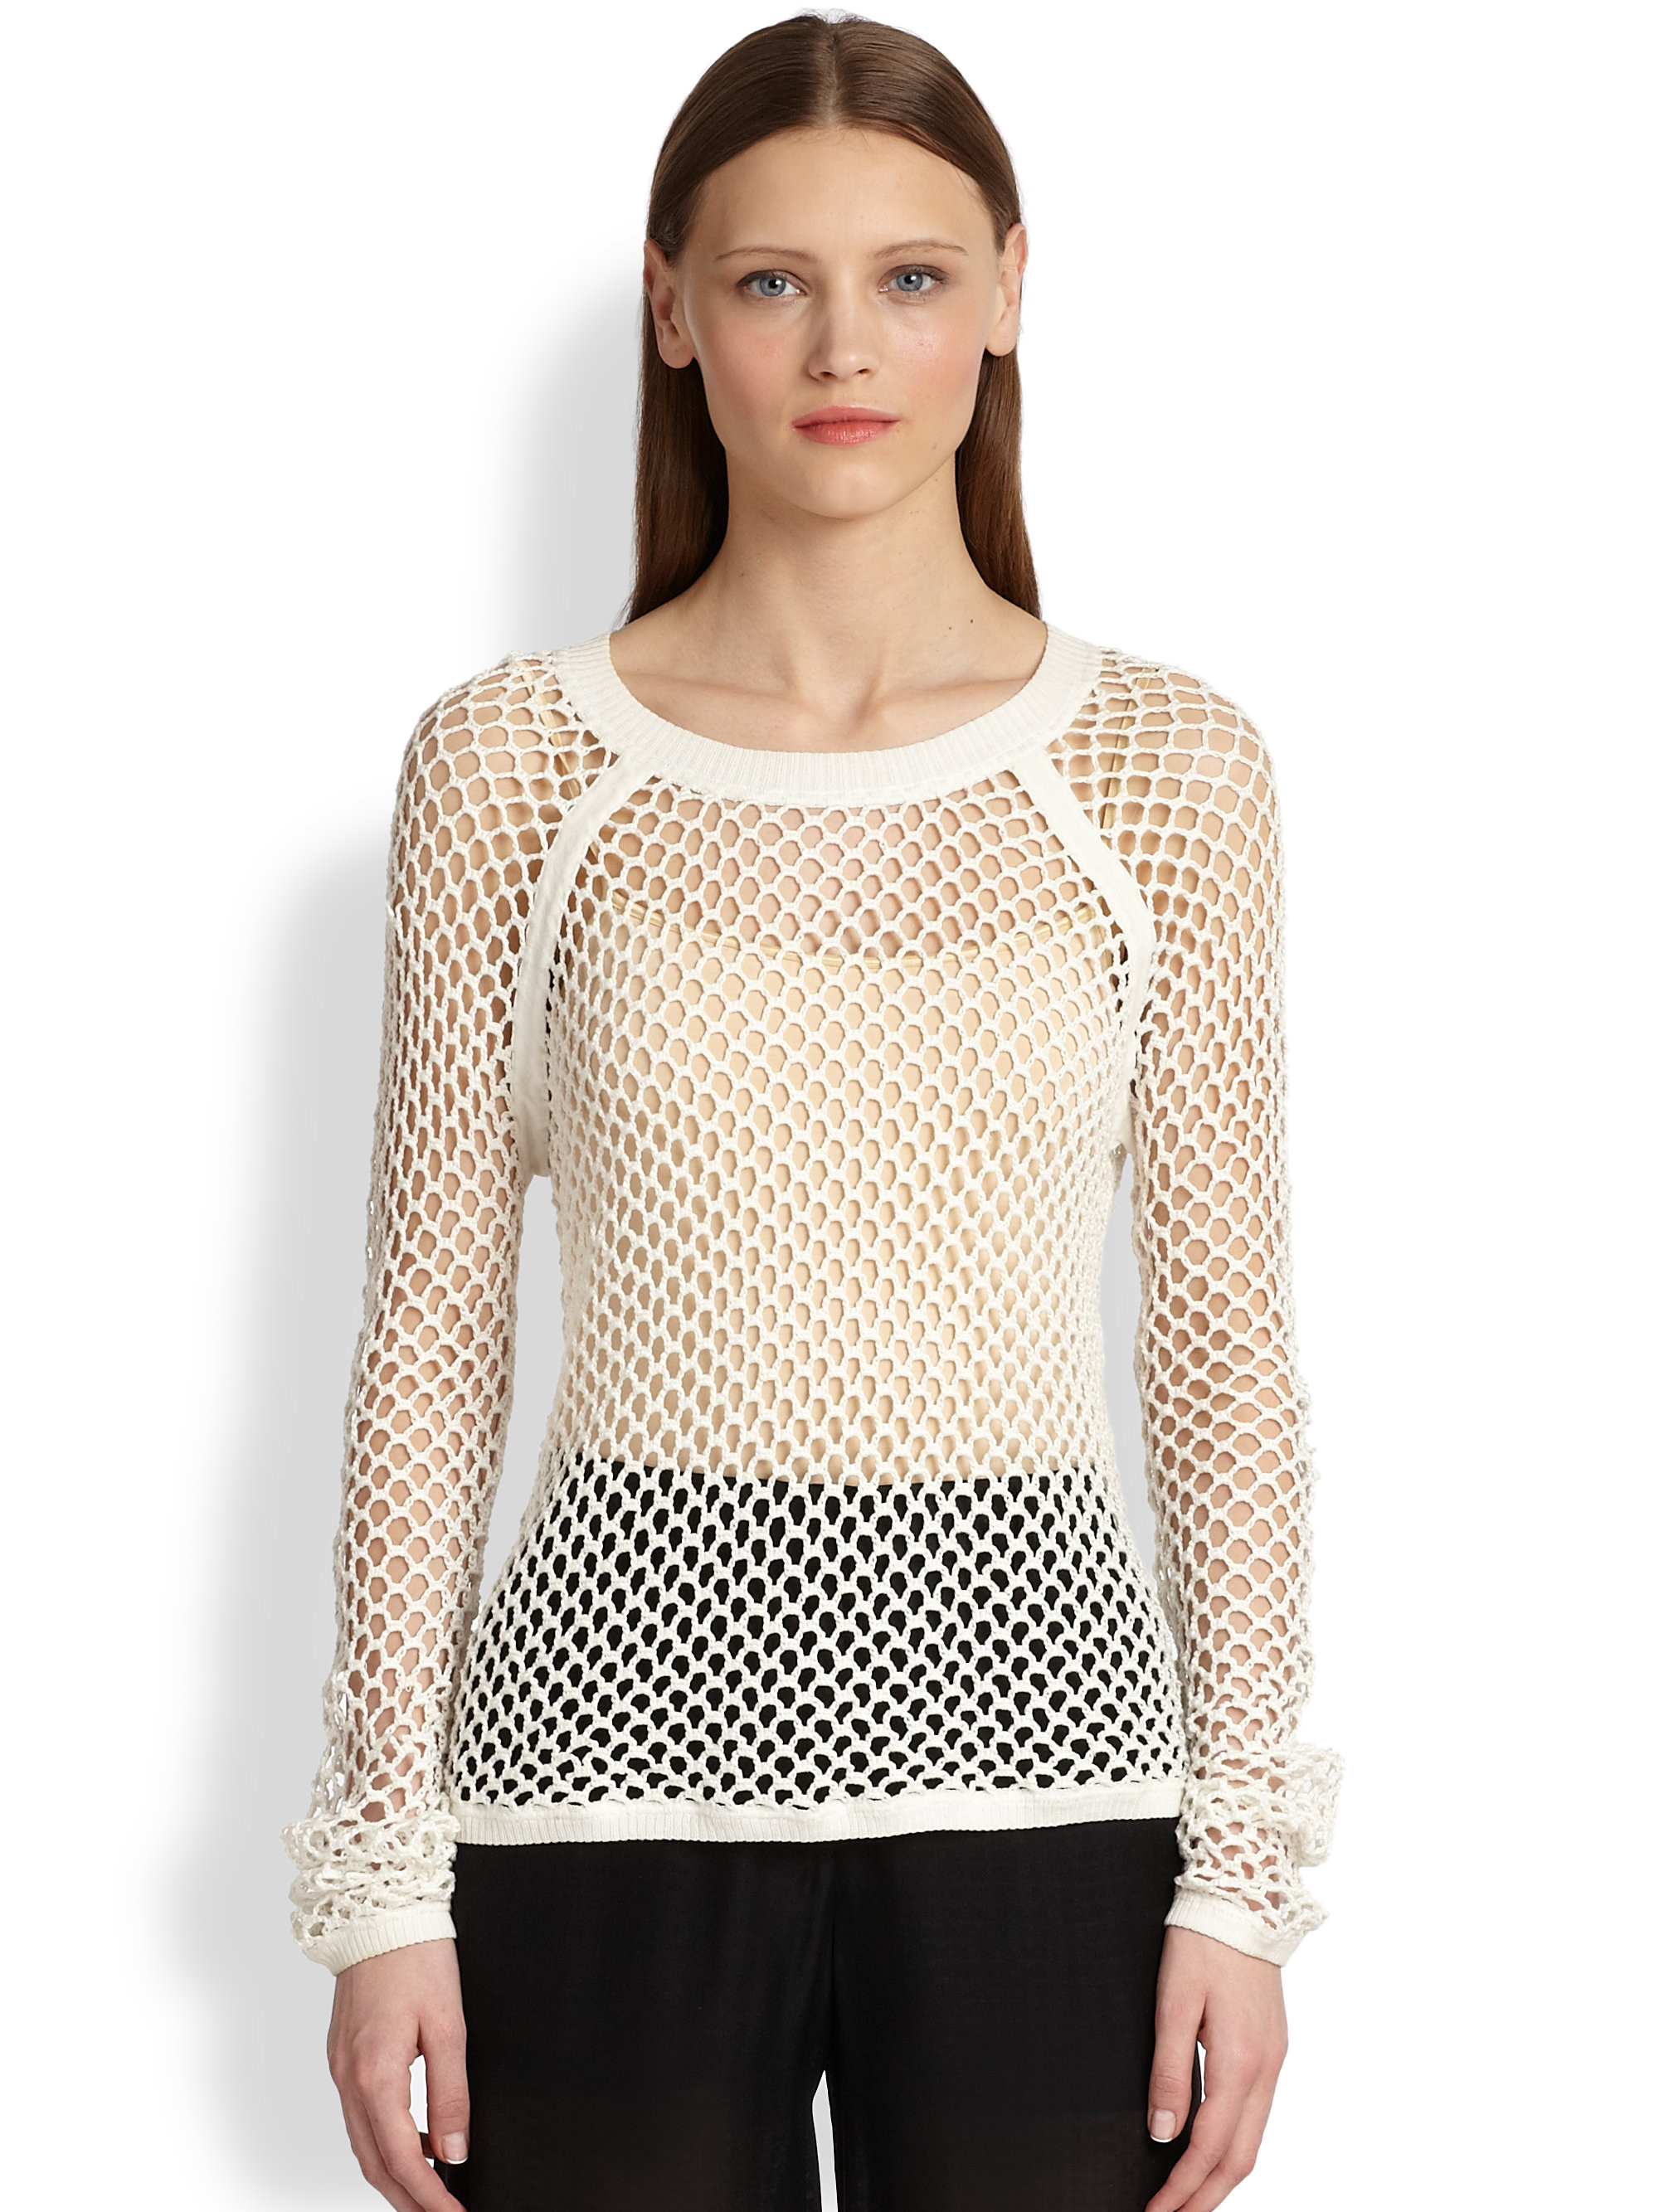 Awesome Lyst Tess Giberson Mesh Crochet Sweater In White White Crochet Sweater Of Wonderful 44 Ideas White Crochet Sweater